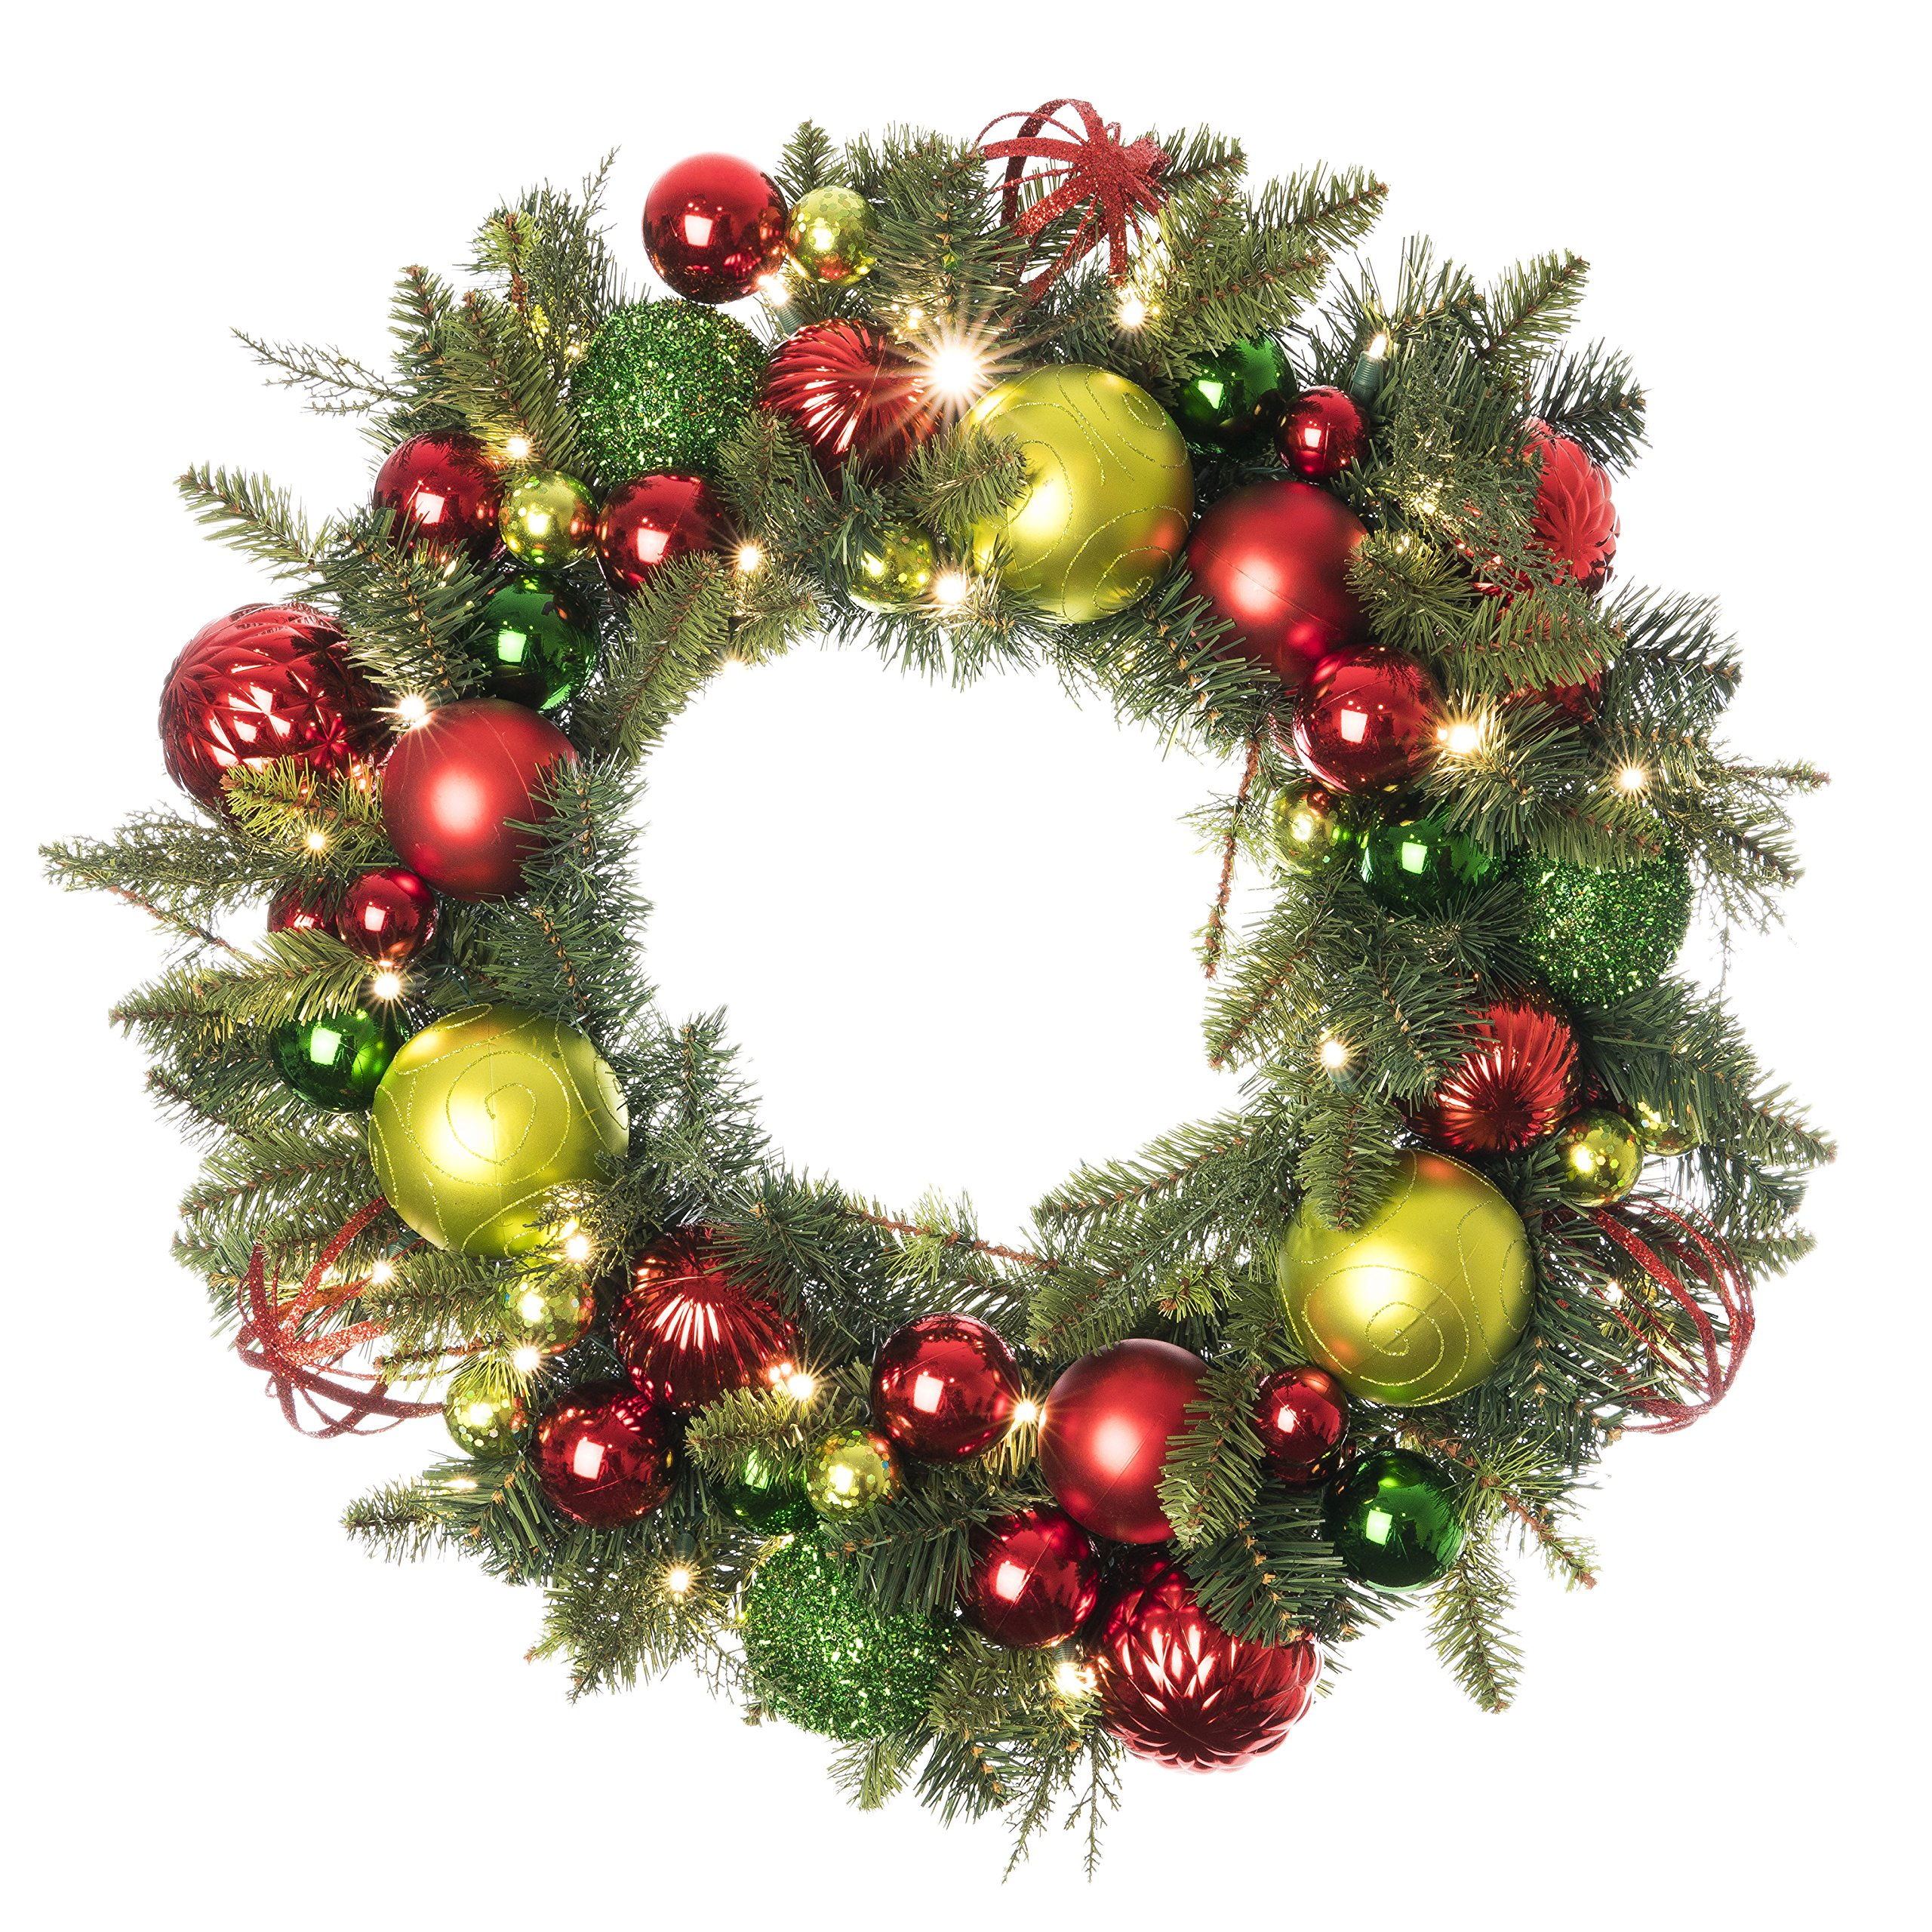 30 in. Artificial Pre Lit LED Decorated Wreath Christmas Wreath-Festive Holiday decorations-50 super mini LED warm clear colored lights with timer and battery pack for indoor and outdoor use